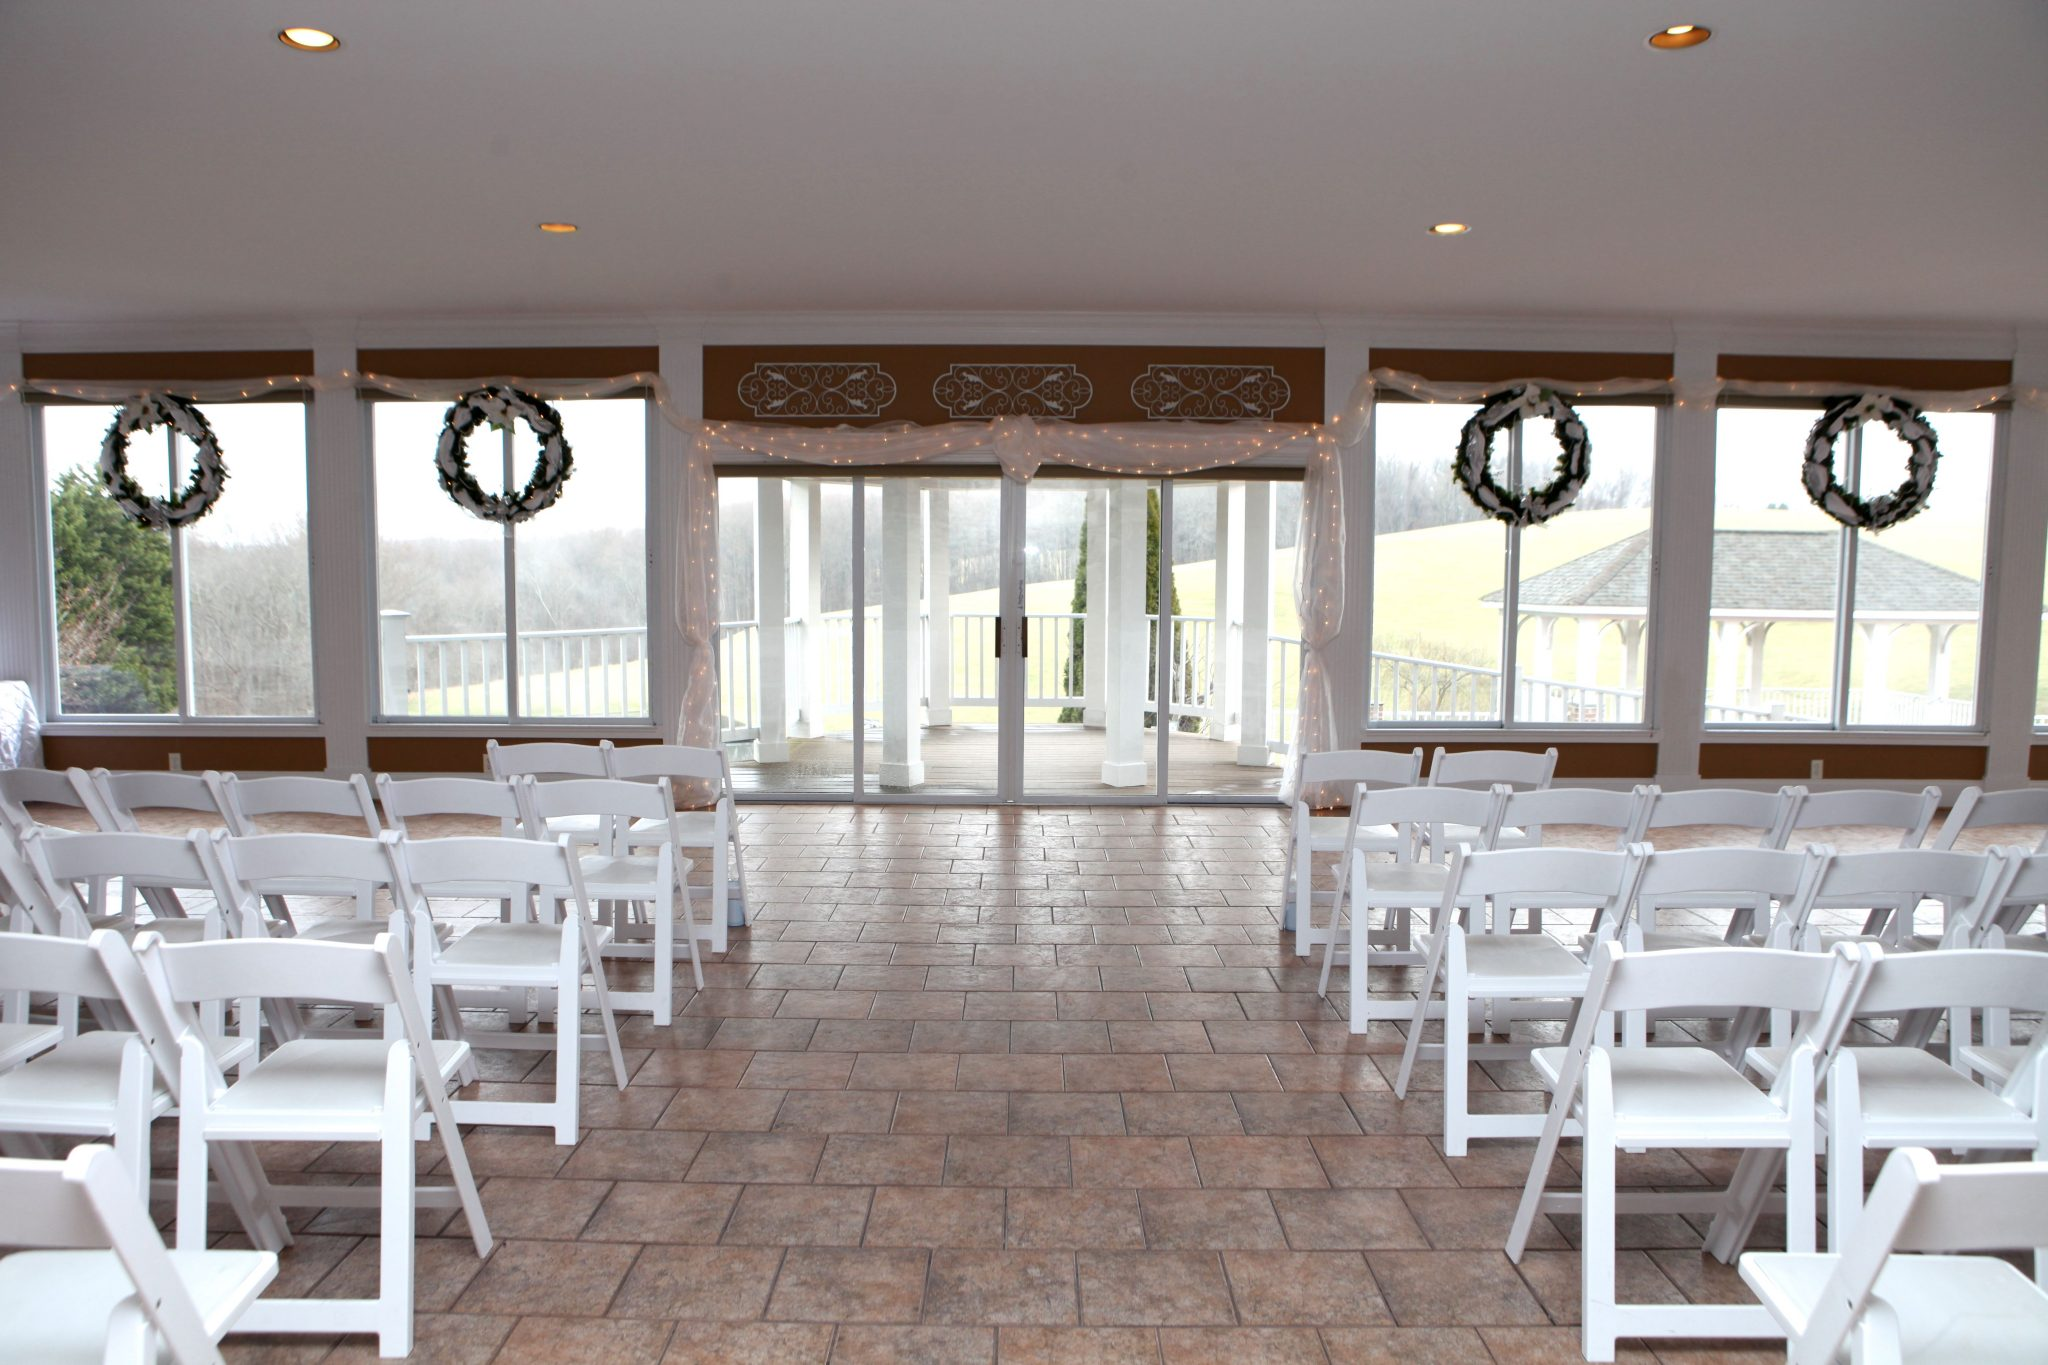 Indoor wedding ceremony at Morningside Inn wedding venue in Maryland